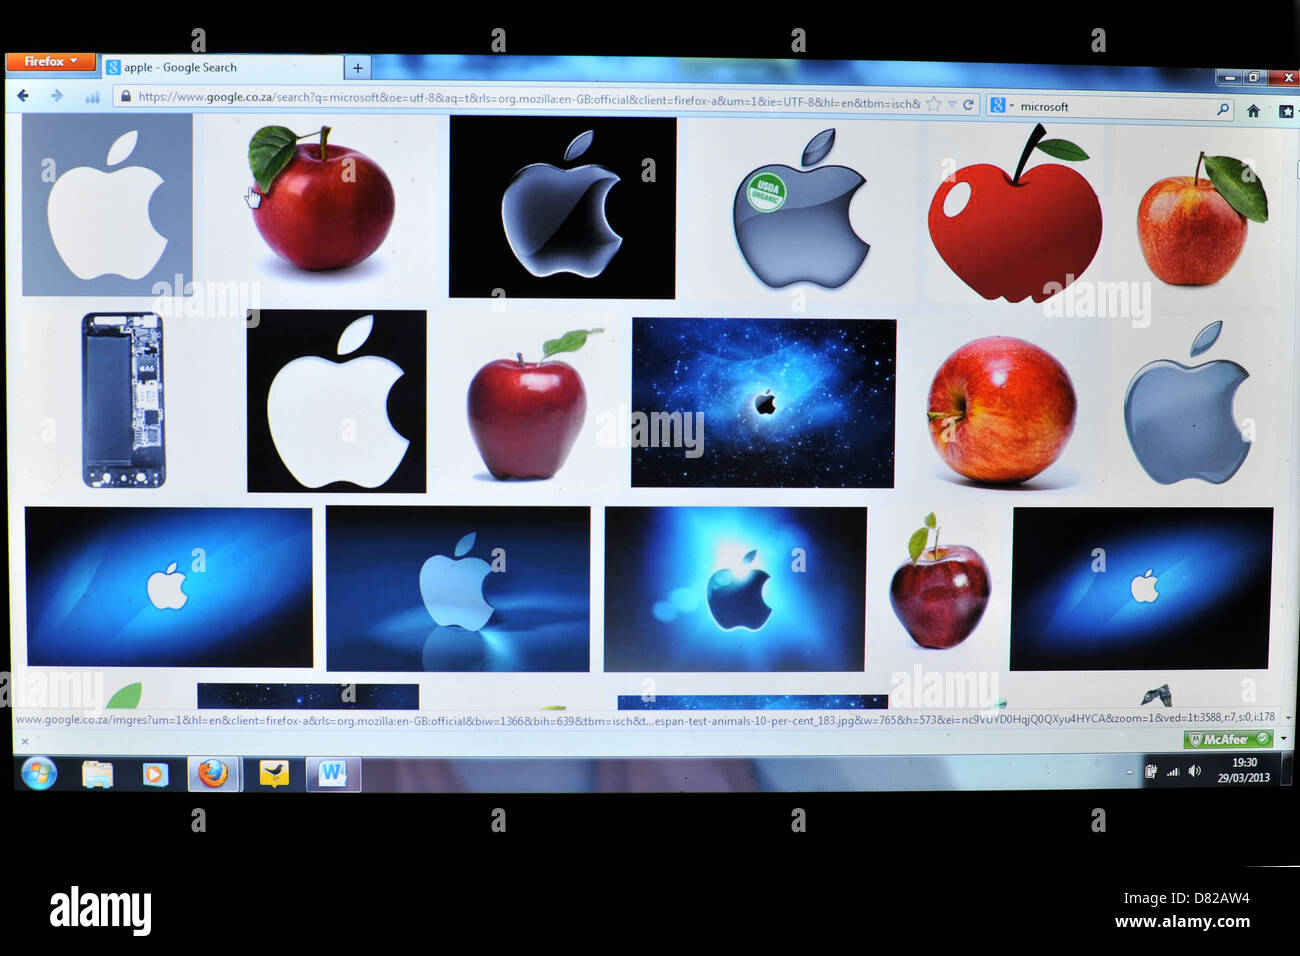 Image of a laptop screen showing - Stock Image